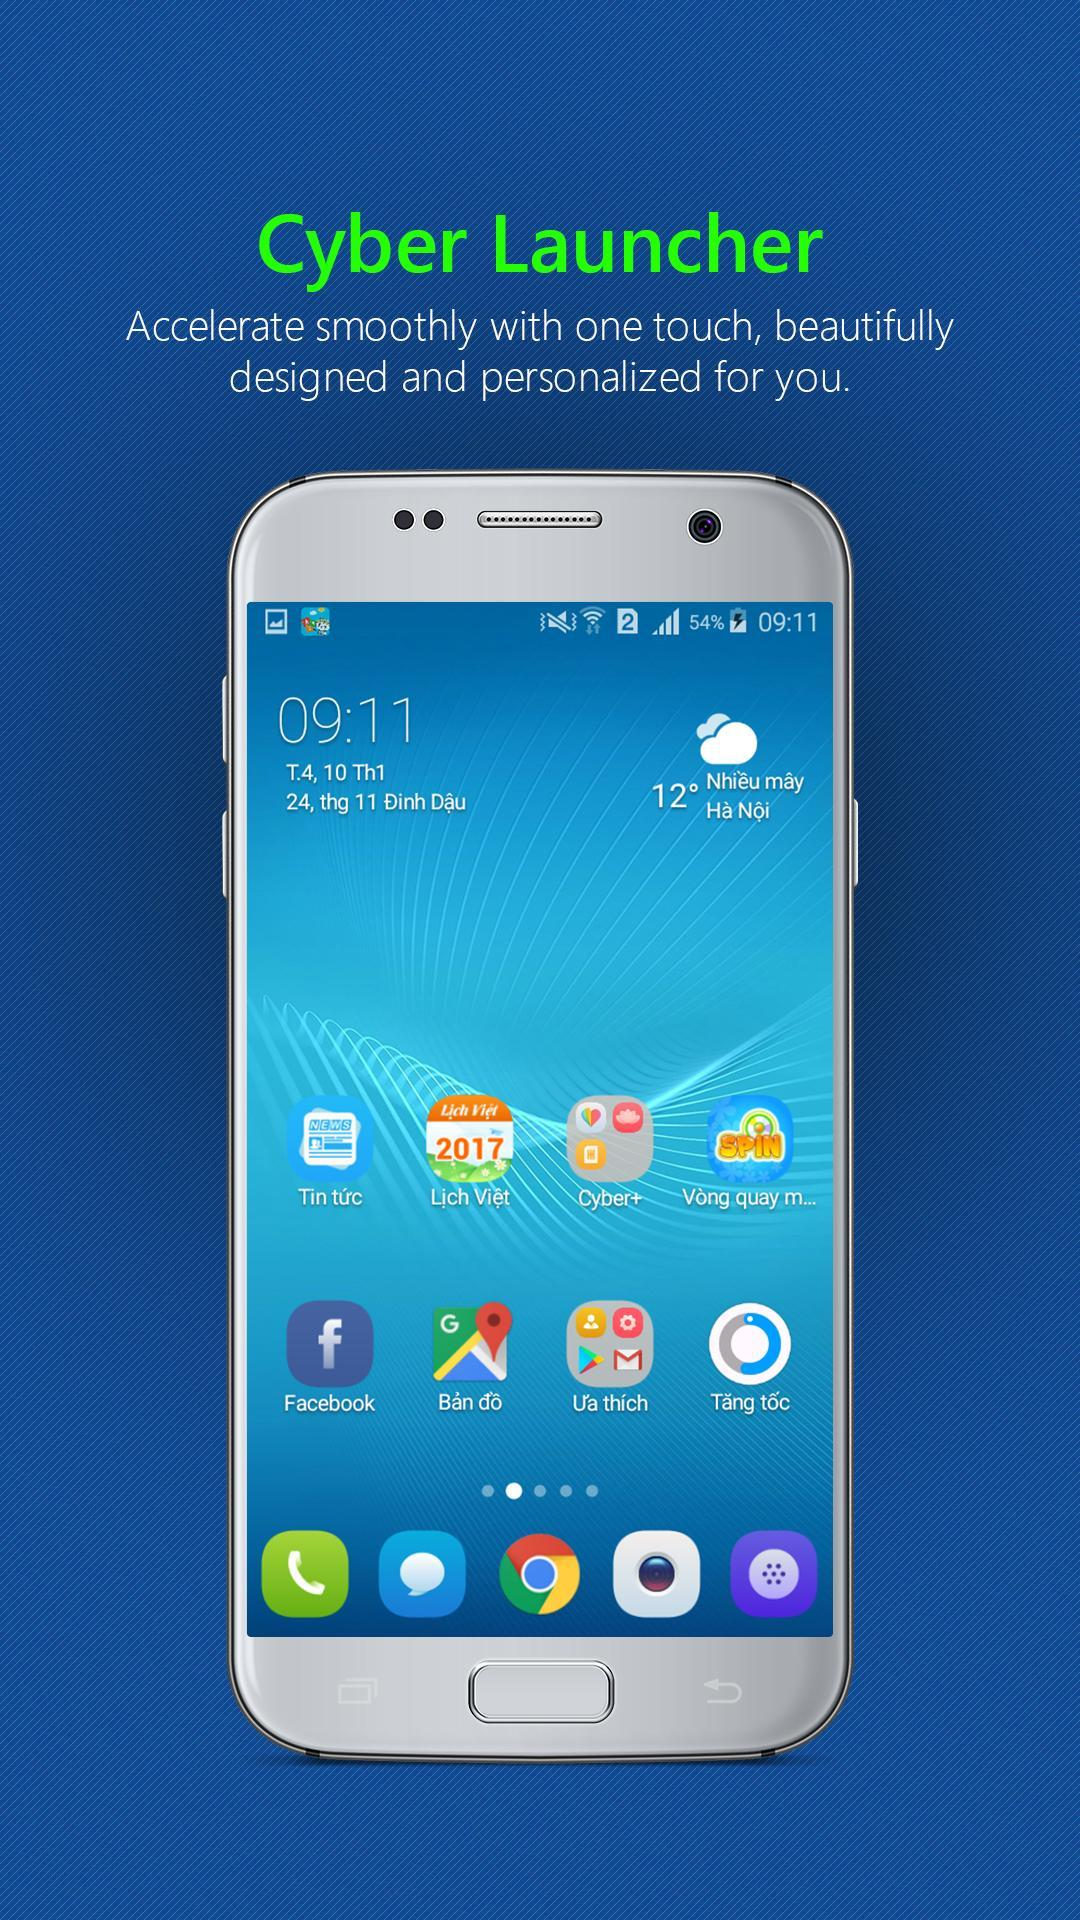 New launcher - Mobile Launcher for Android - APK Download